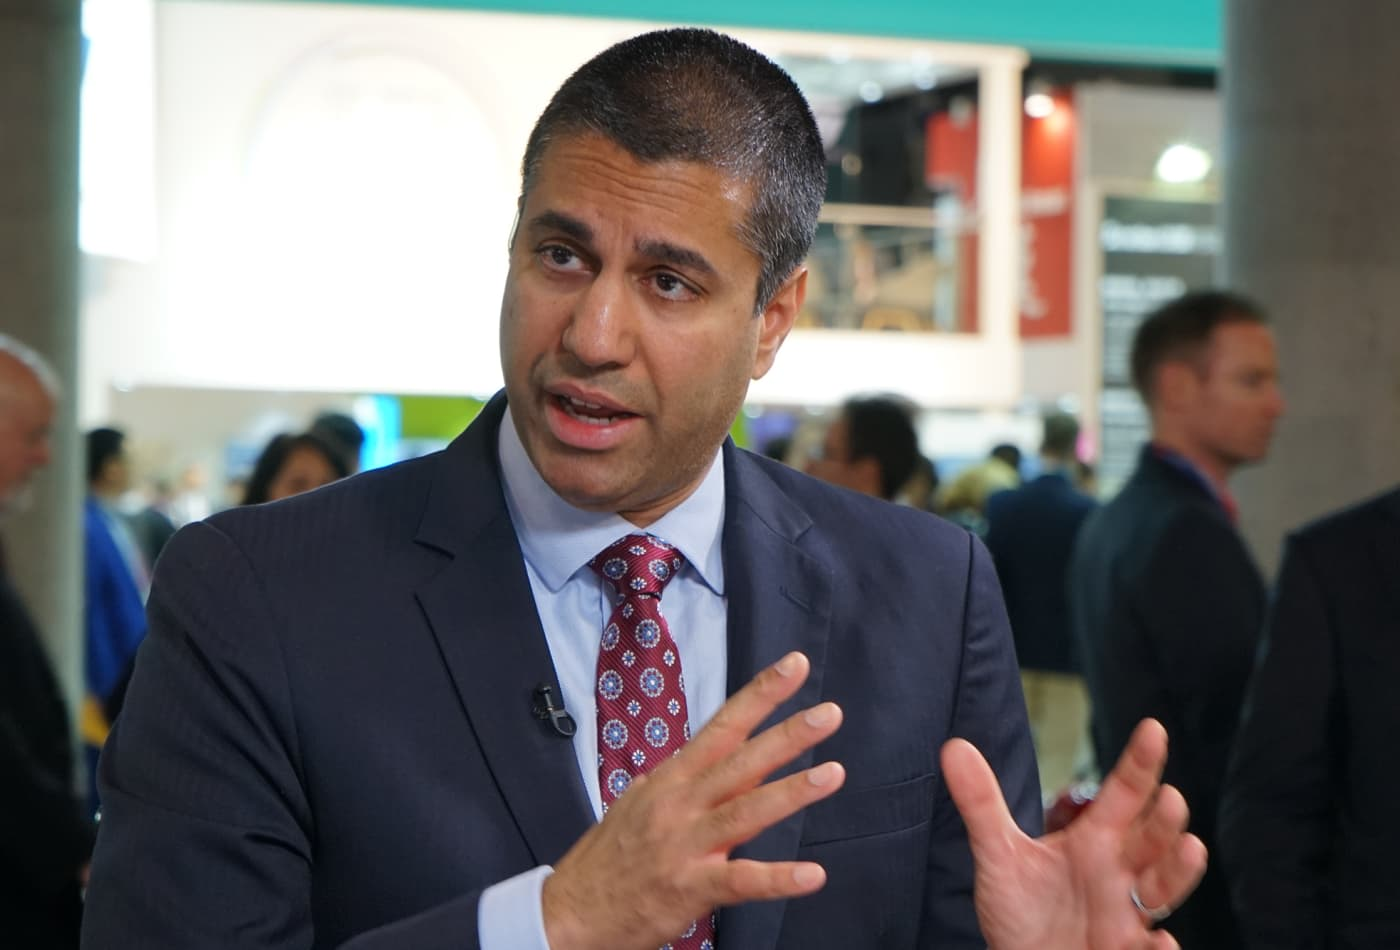 Net neutrality foe and Trump's former FCC Chairman Ajit Pai stands by repeal as Democrats take over